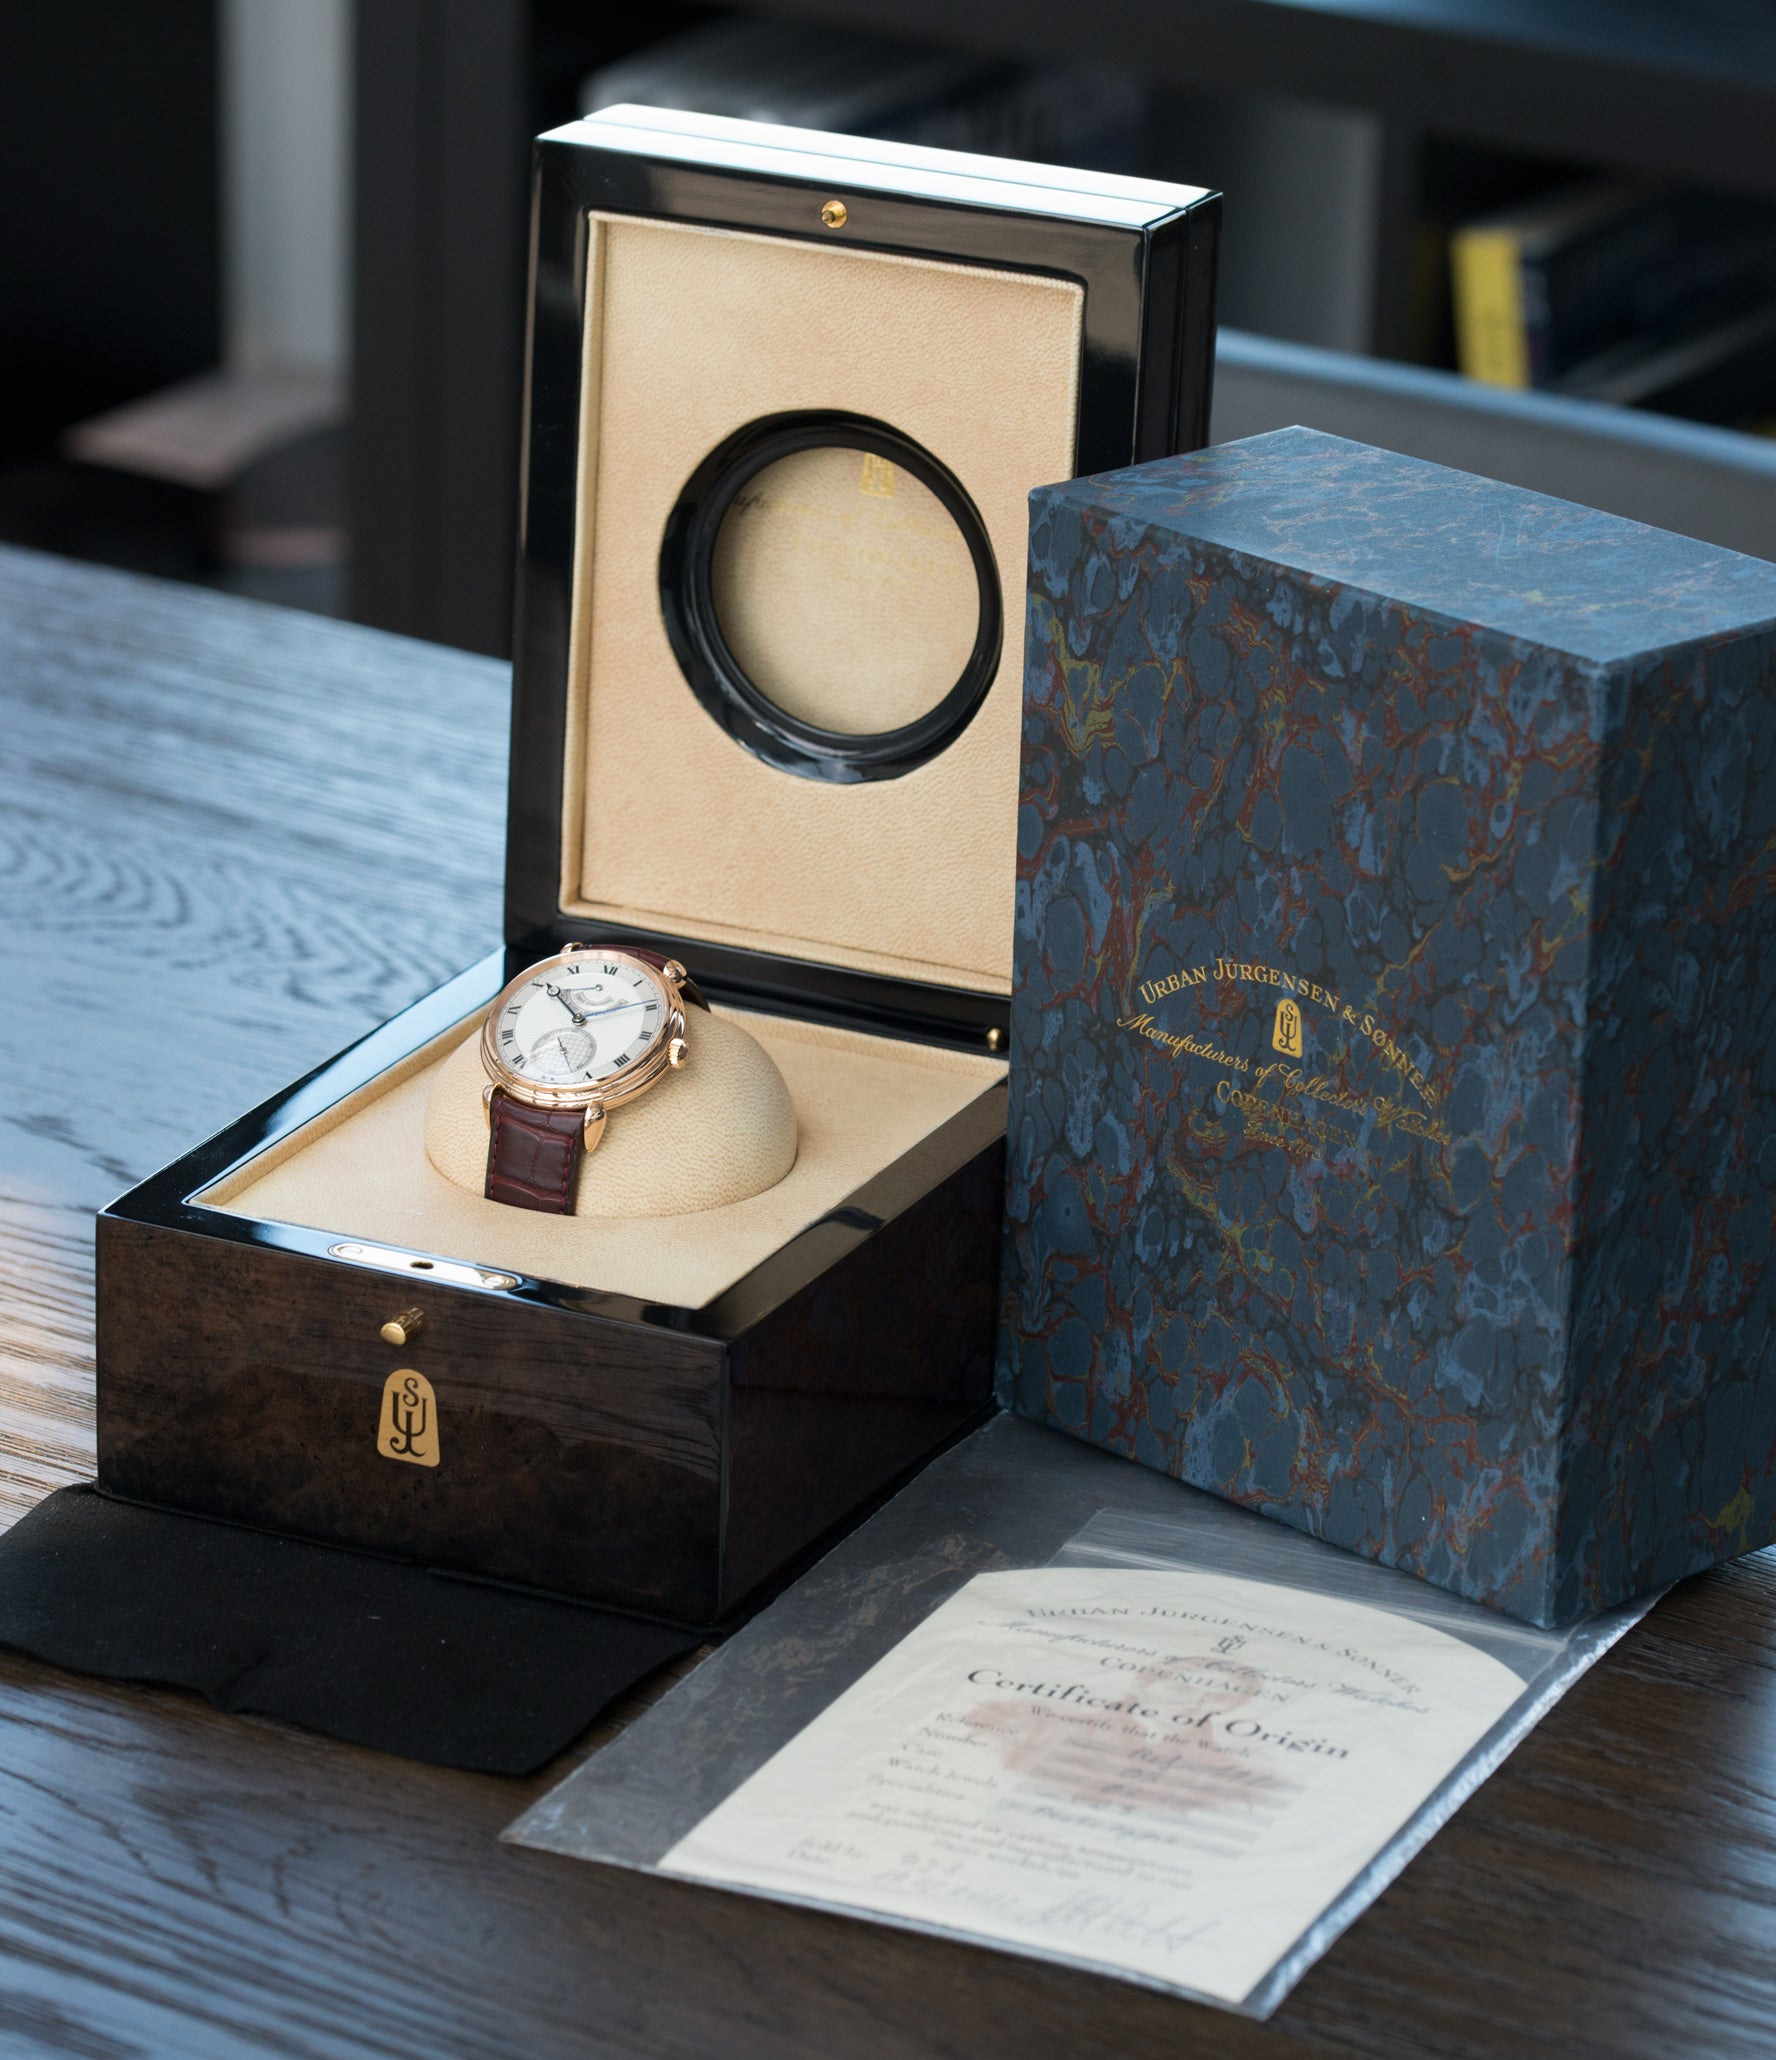 full set Urban Jurgensen 11L prototype rose gold watch at A Collected Man London United Kingdom online specialist of independent watchmakers